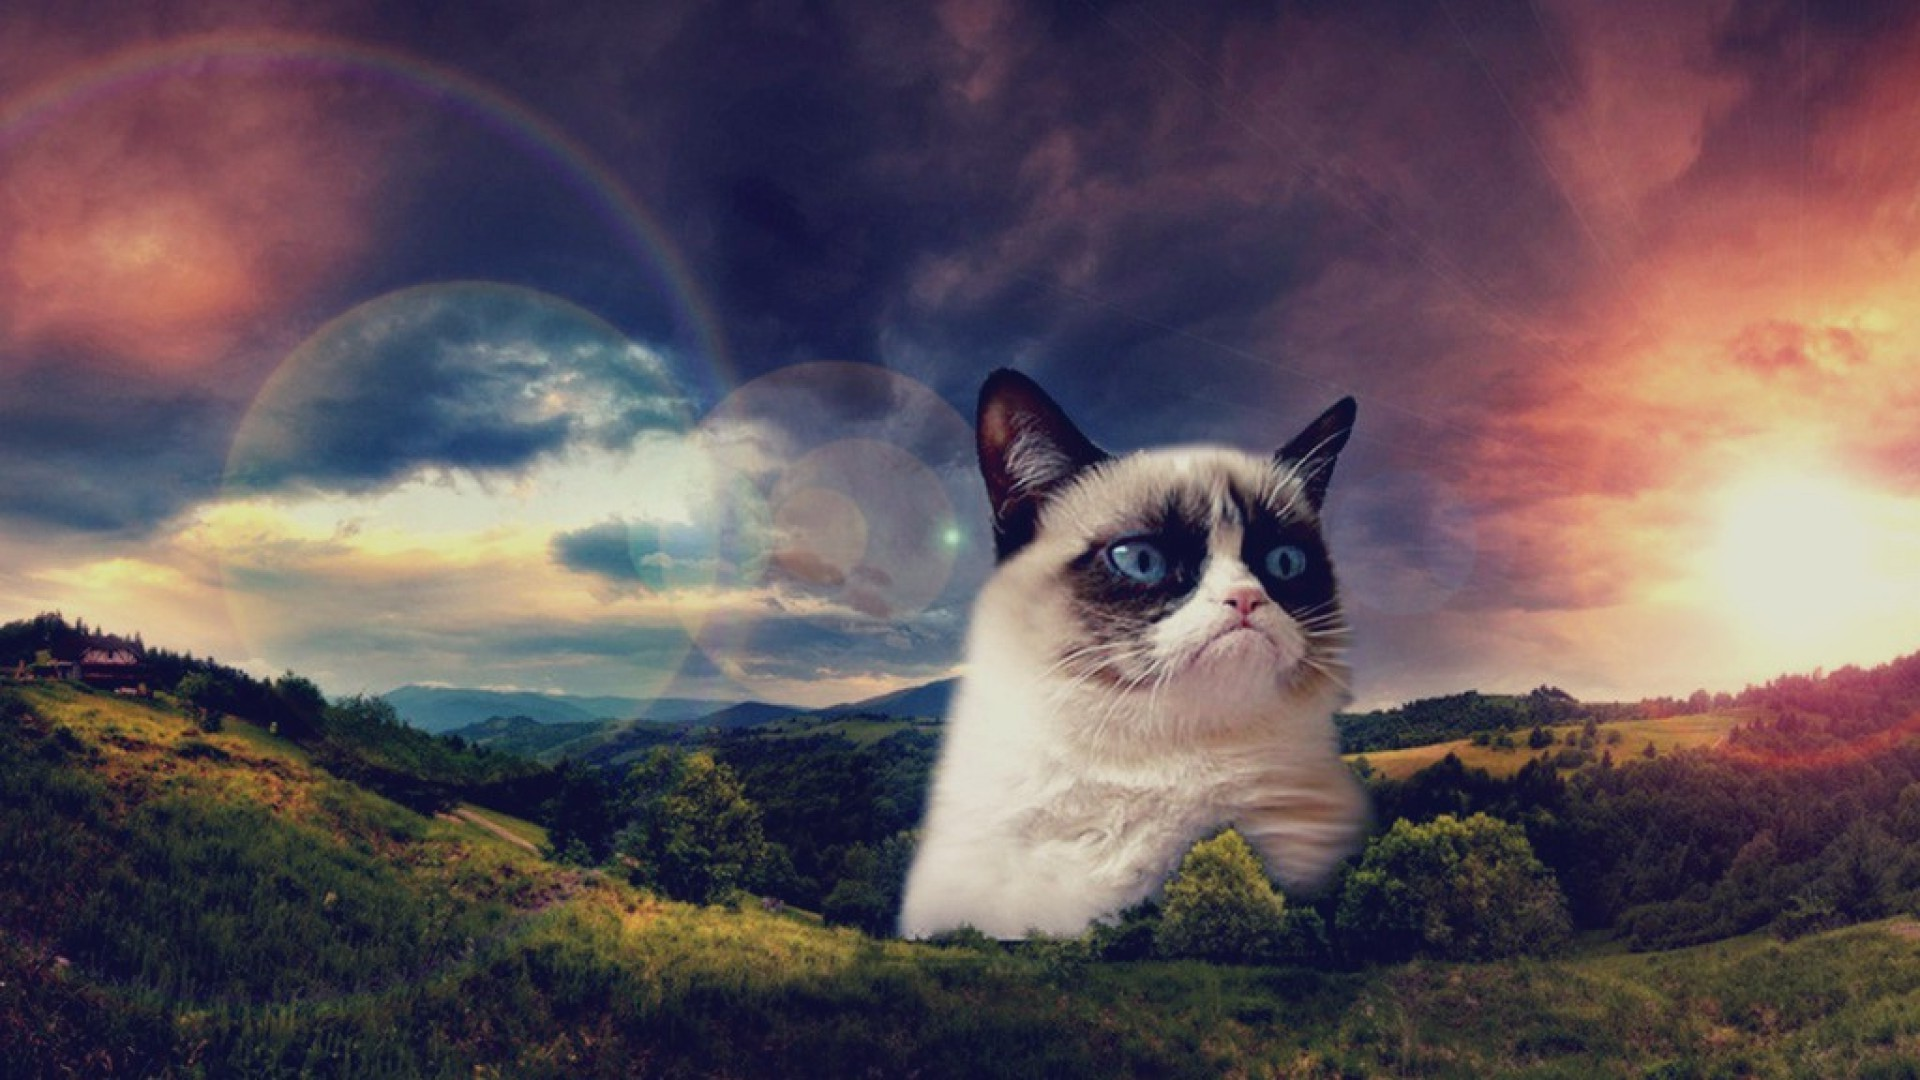 Hd Wallpapers Cars For Iphone Grumpy Cat Wallpapers Hd 61 Images